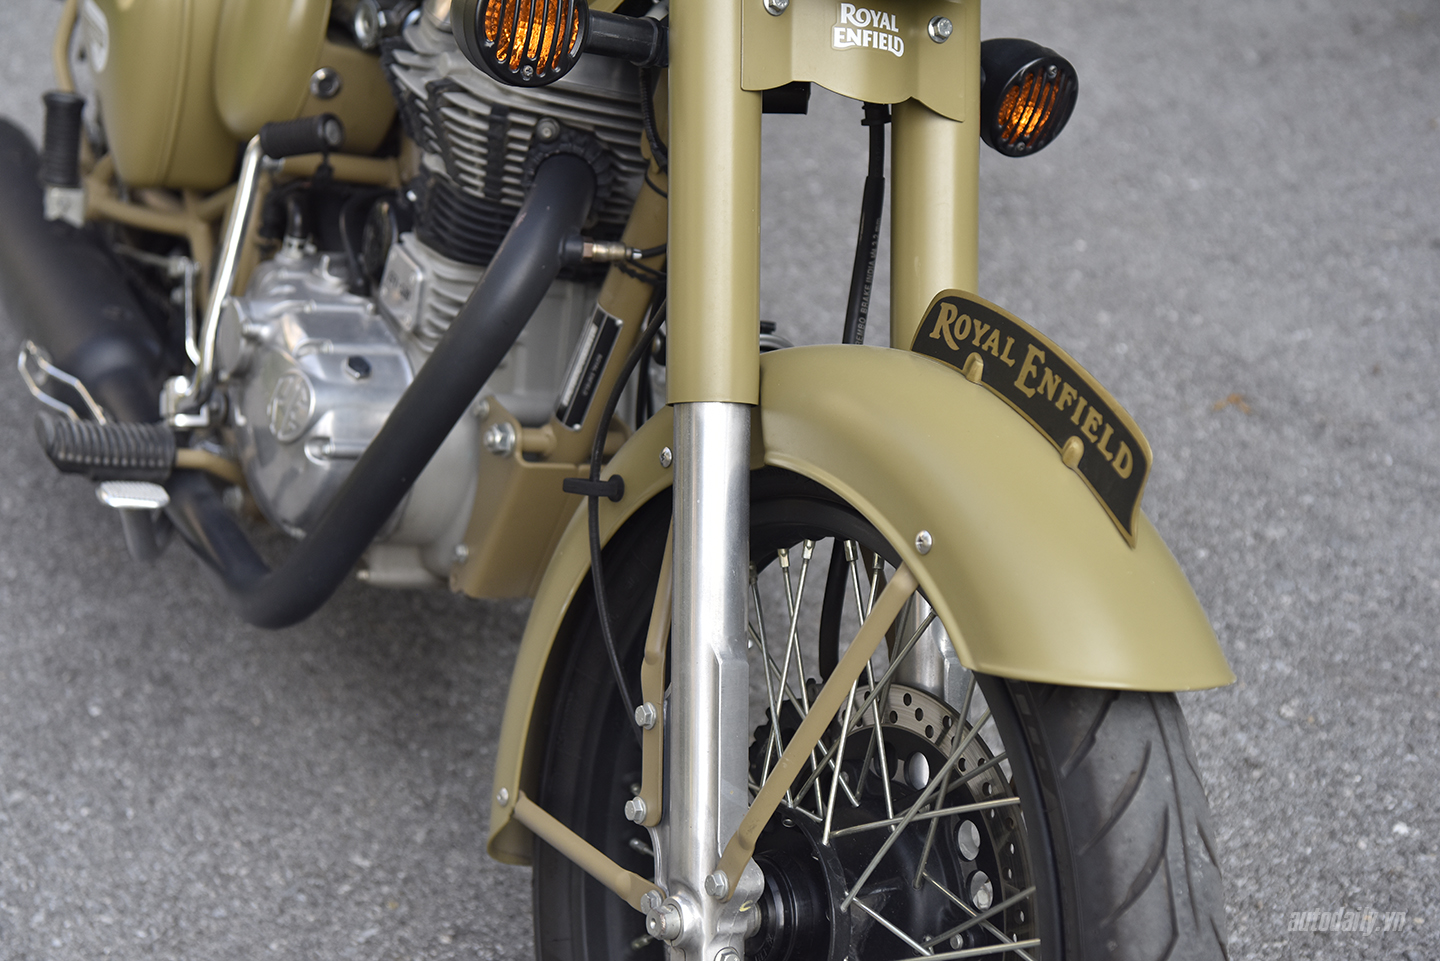 royal-enfield-dsc8051-copy.jpg